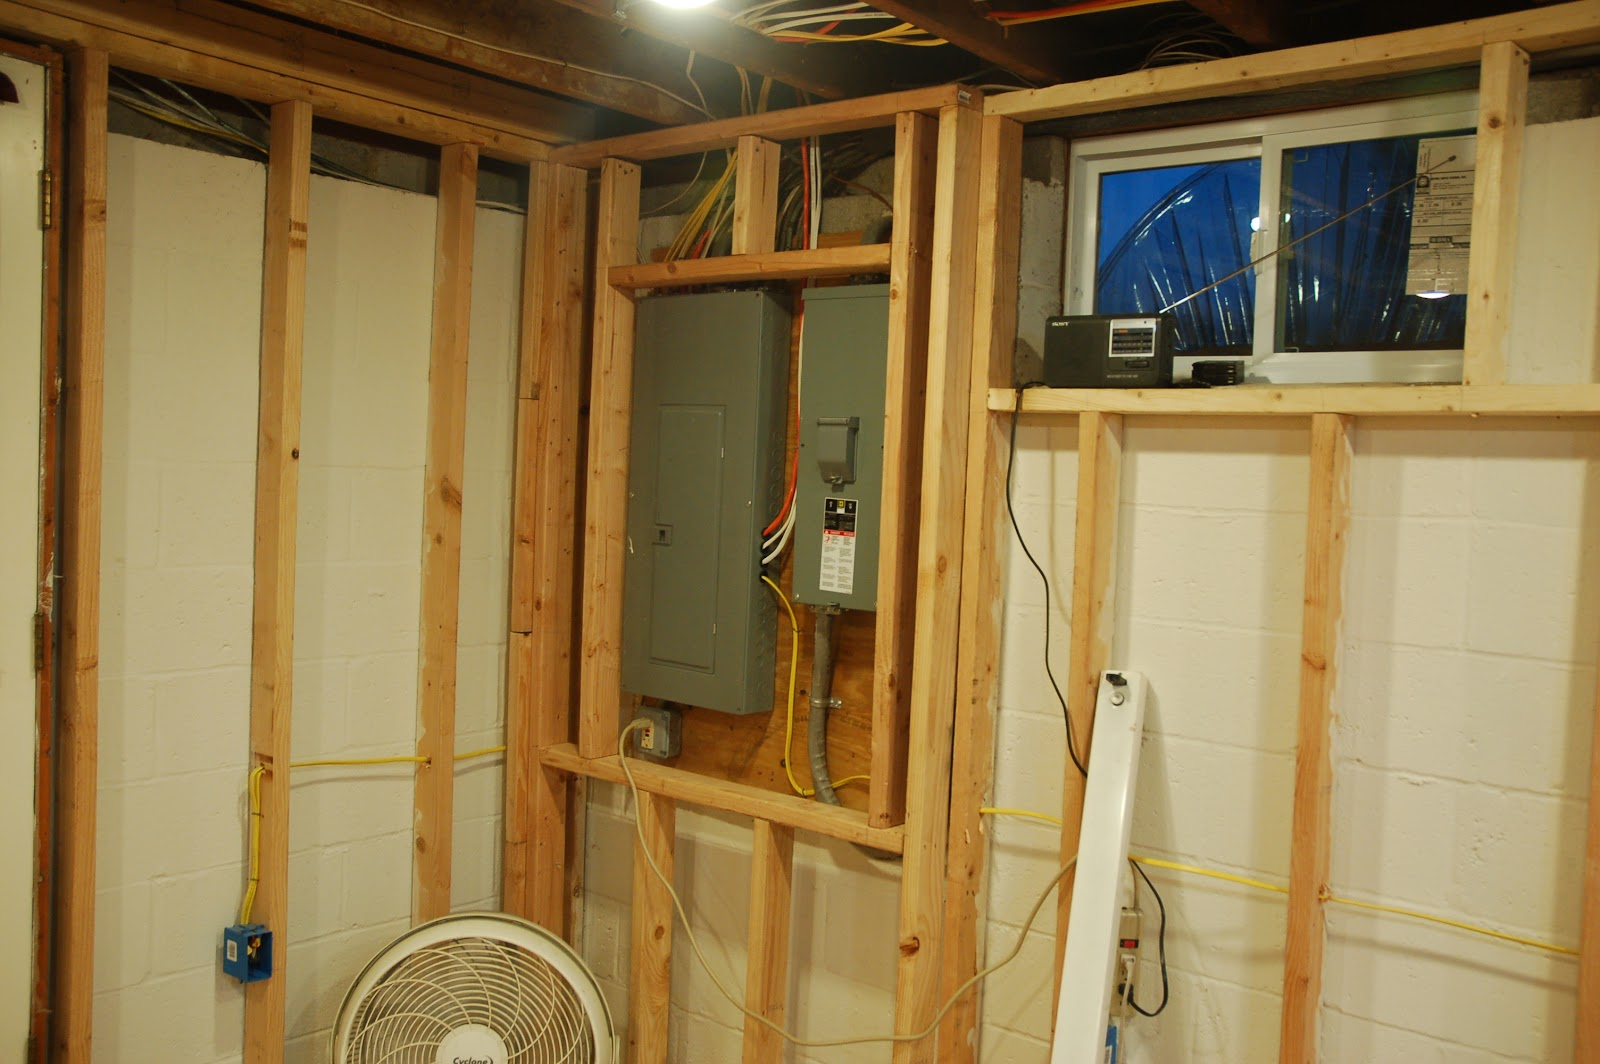 the steaks pictures of the basement remodel in mid stage